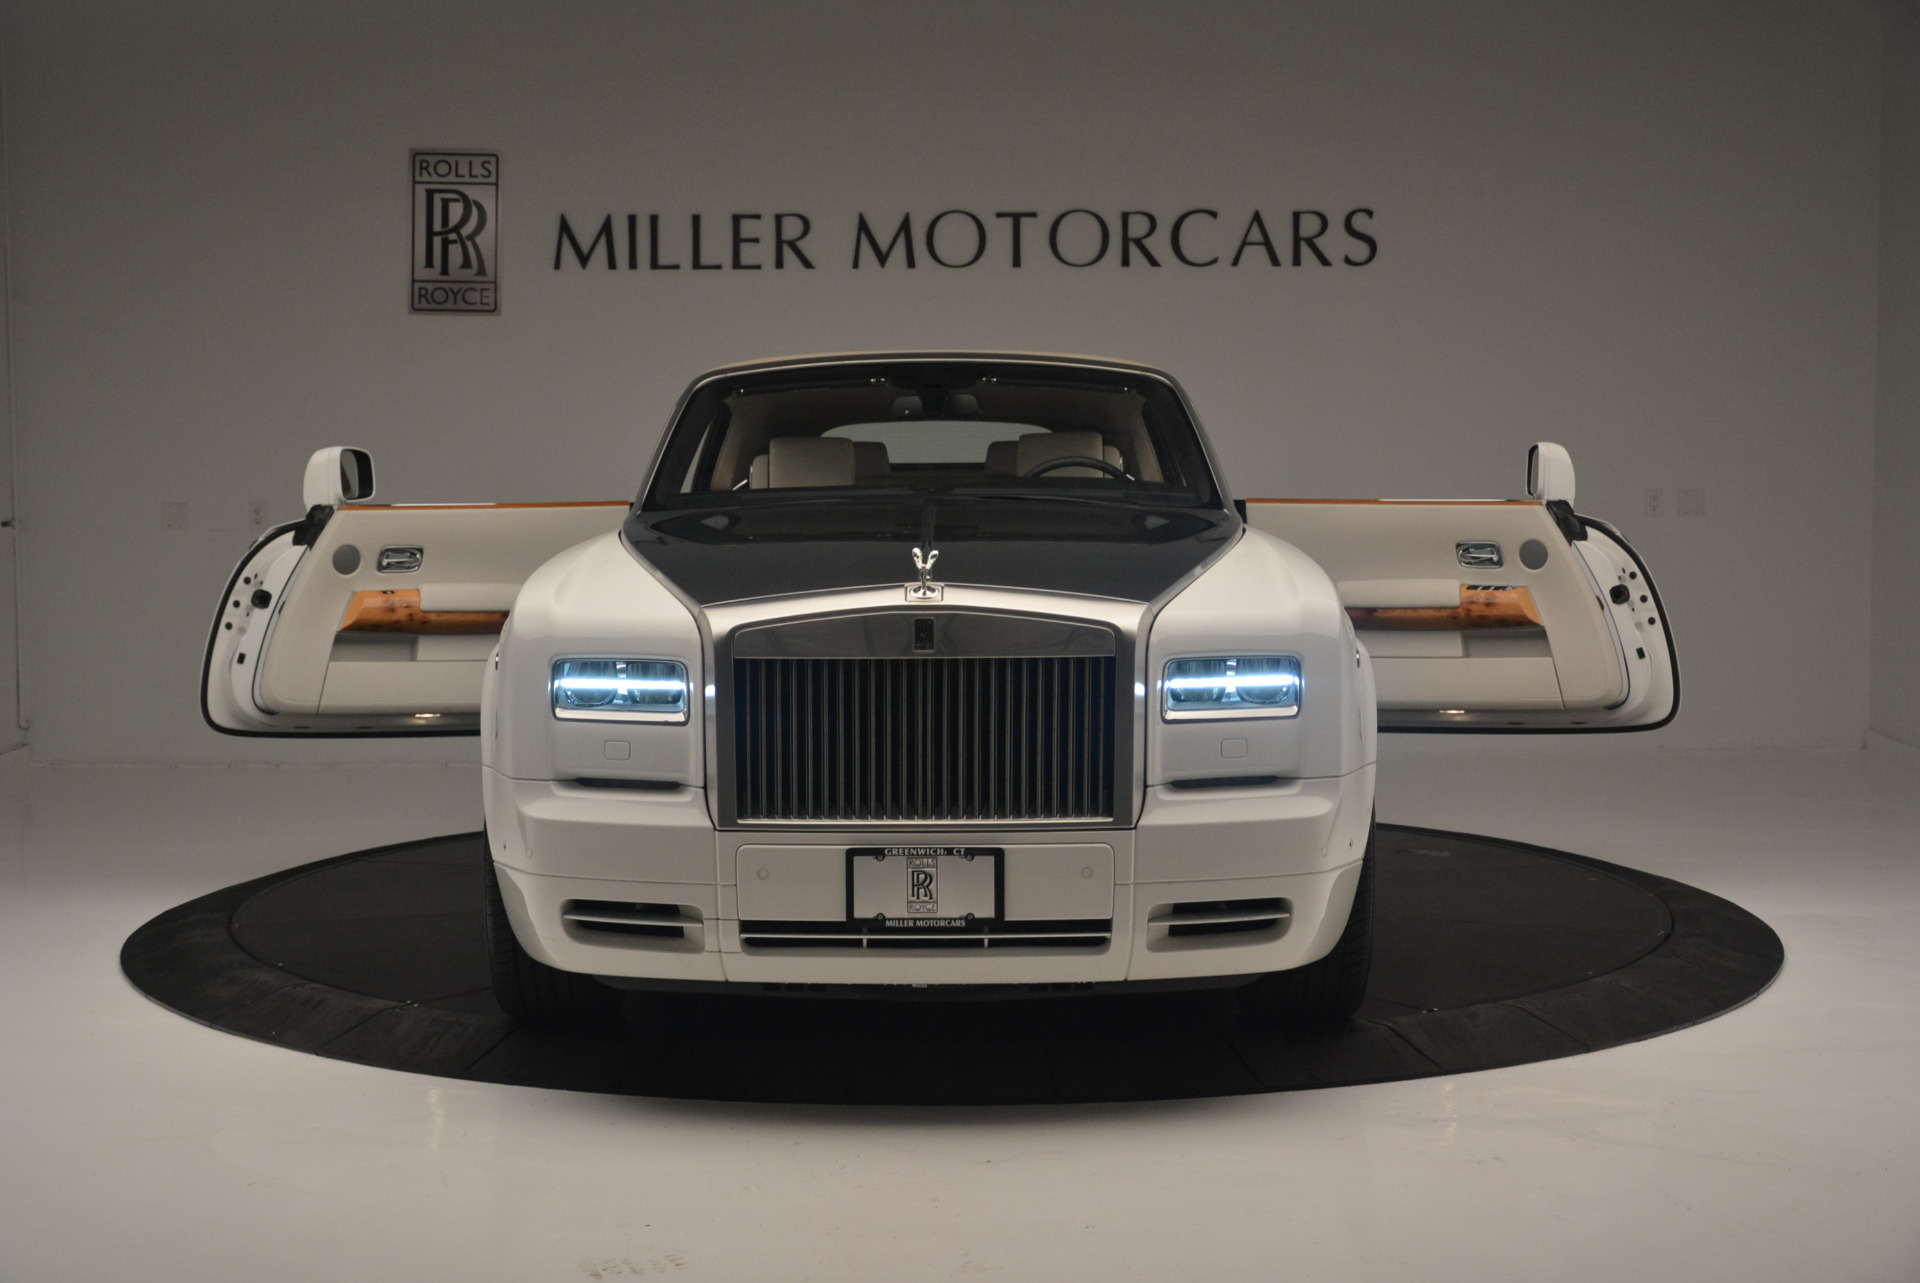 Used 2013 Rolls-Royce Phantom Drophead Coupe  For Sale In Greenwich, CT 2444_p16